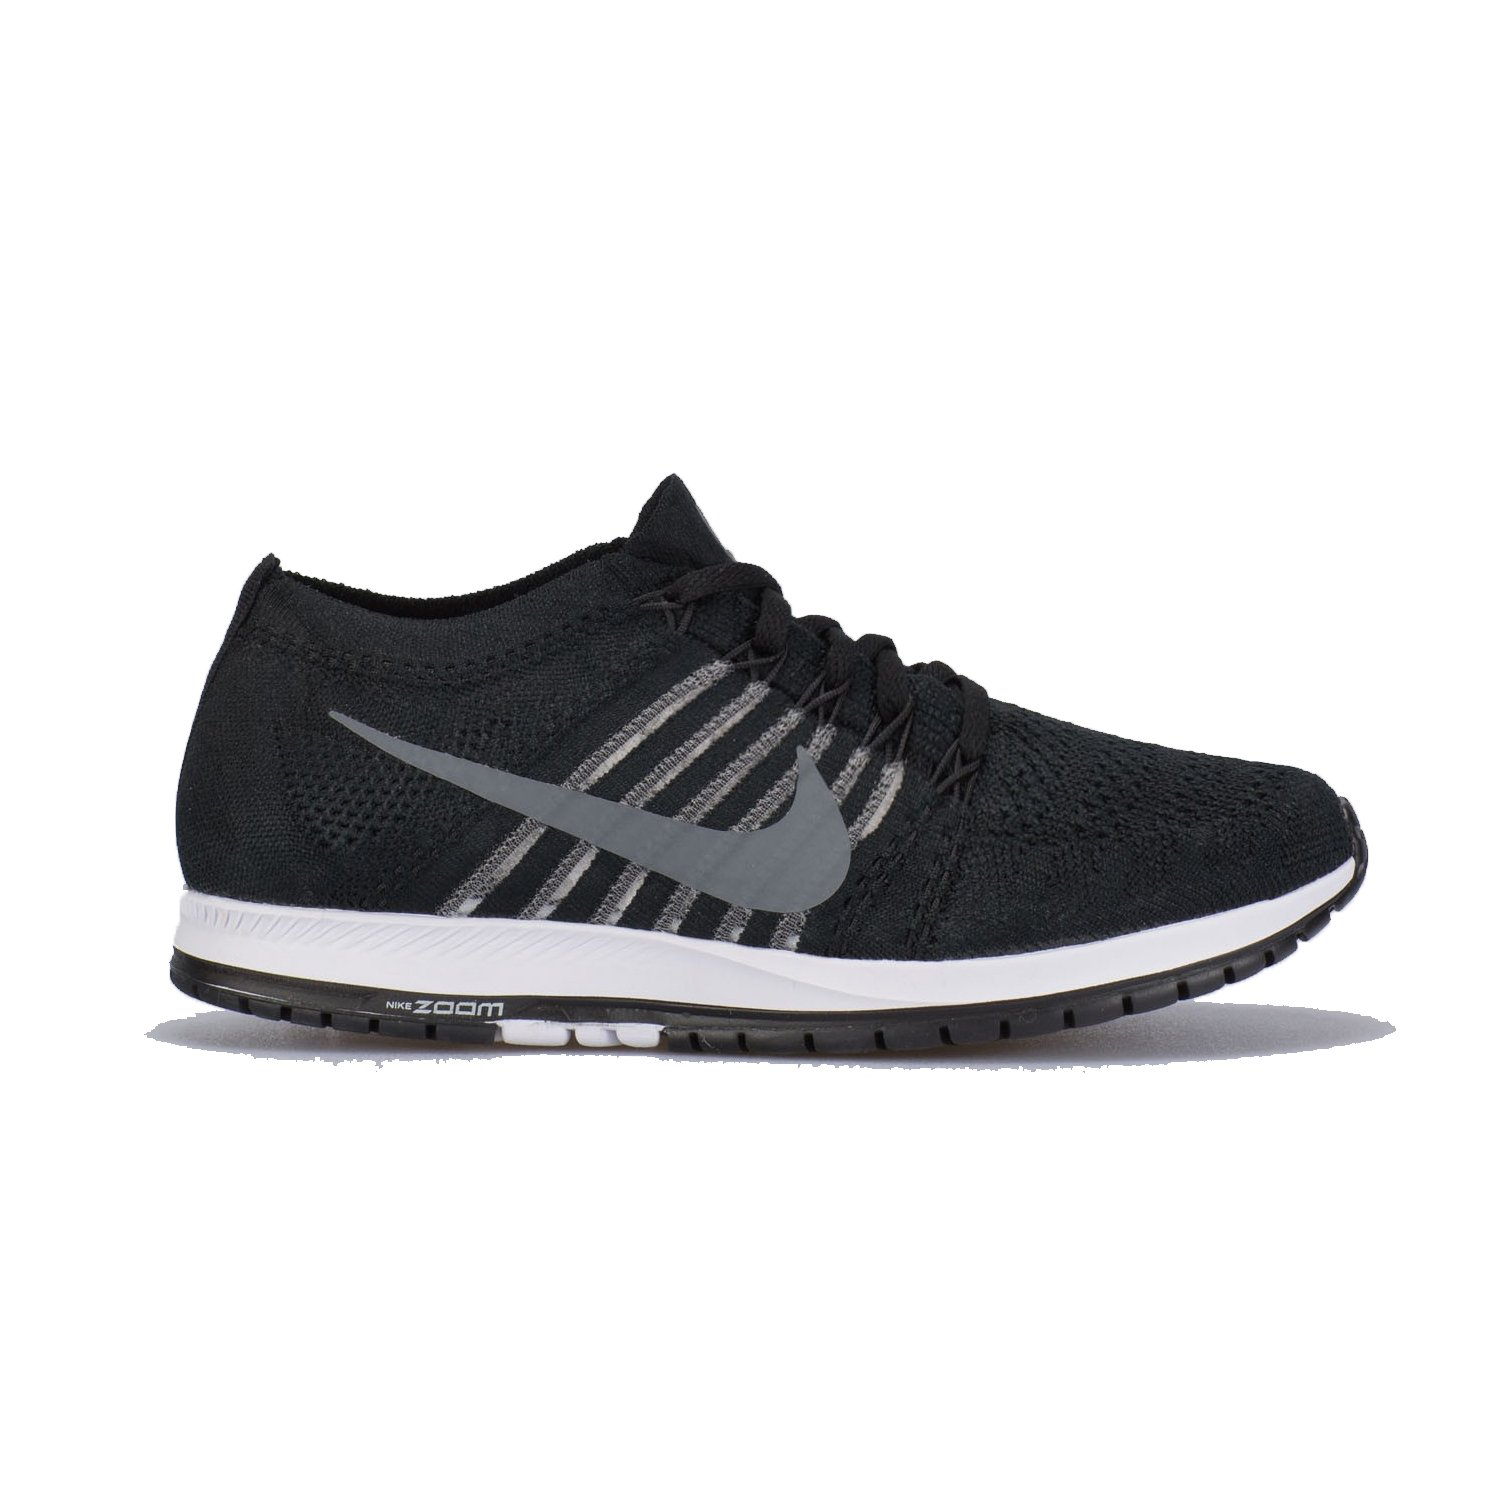 NIKE Flyknit Streak Low Top Running Shoe B0059S4W4S 7 B(M) US|Black